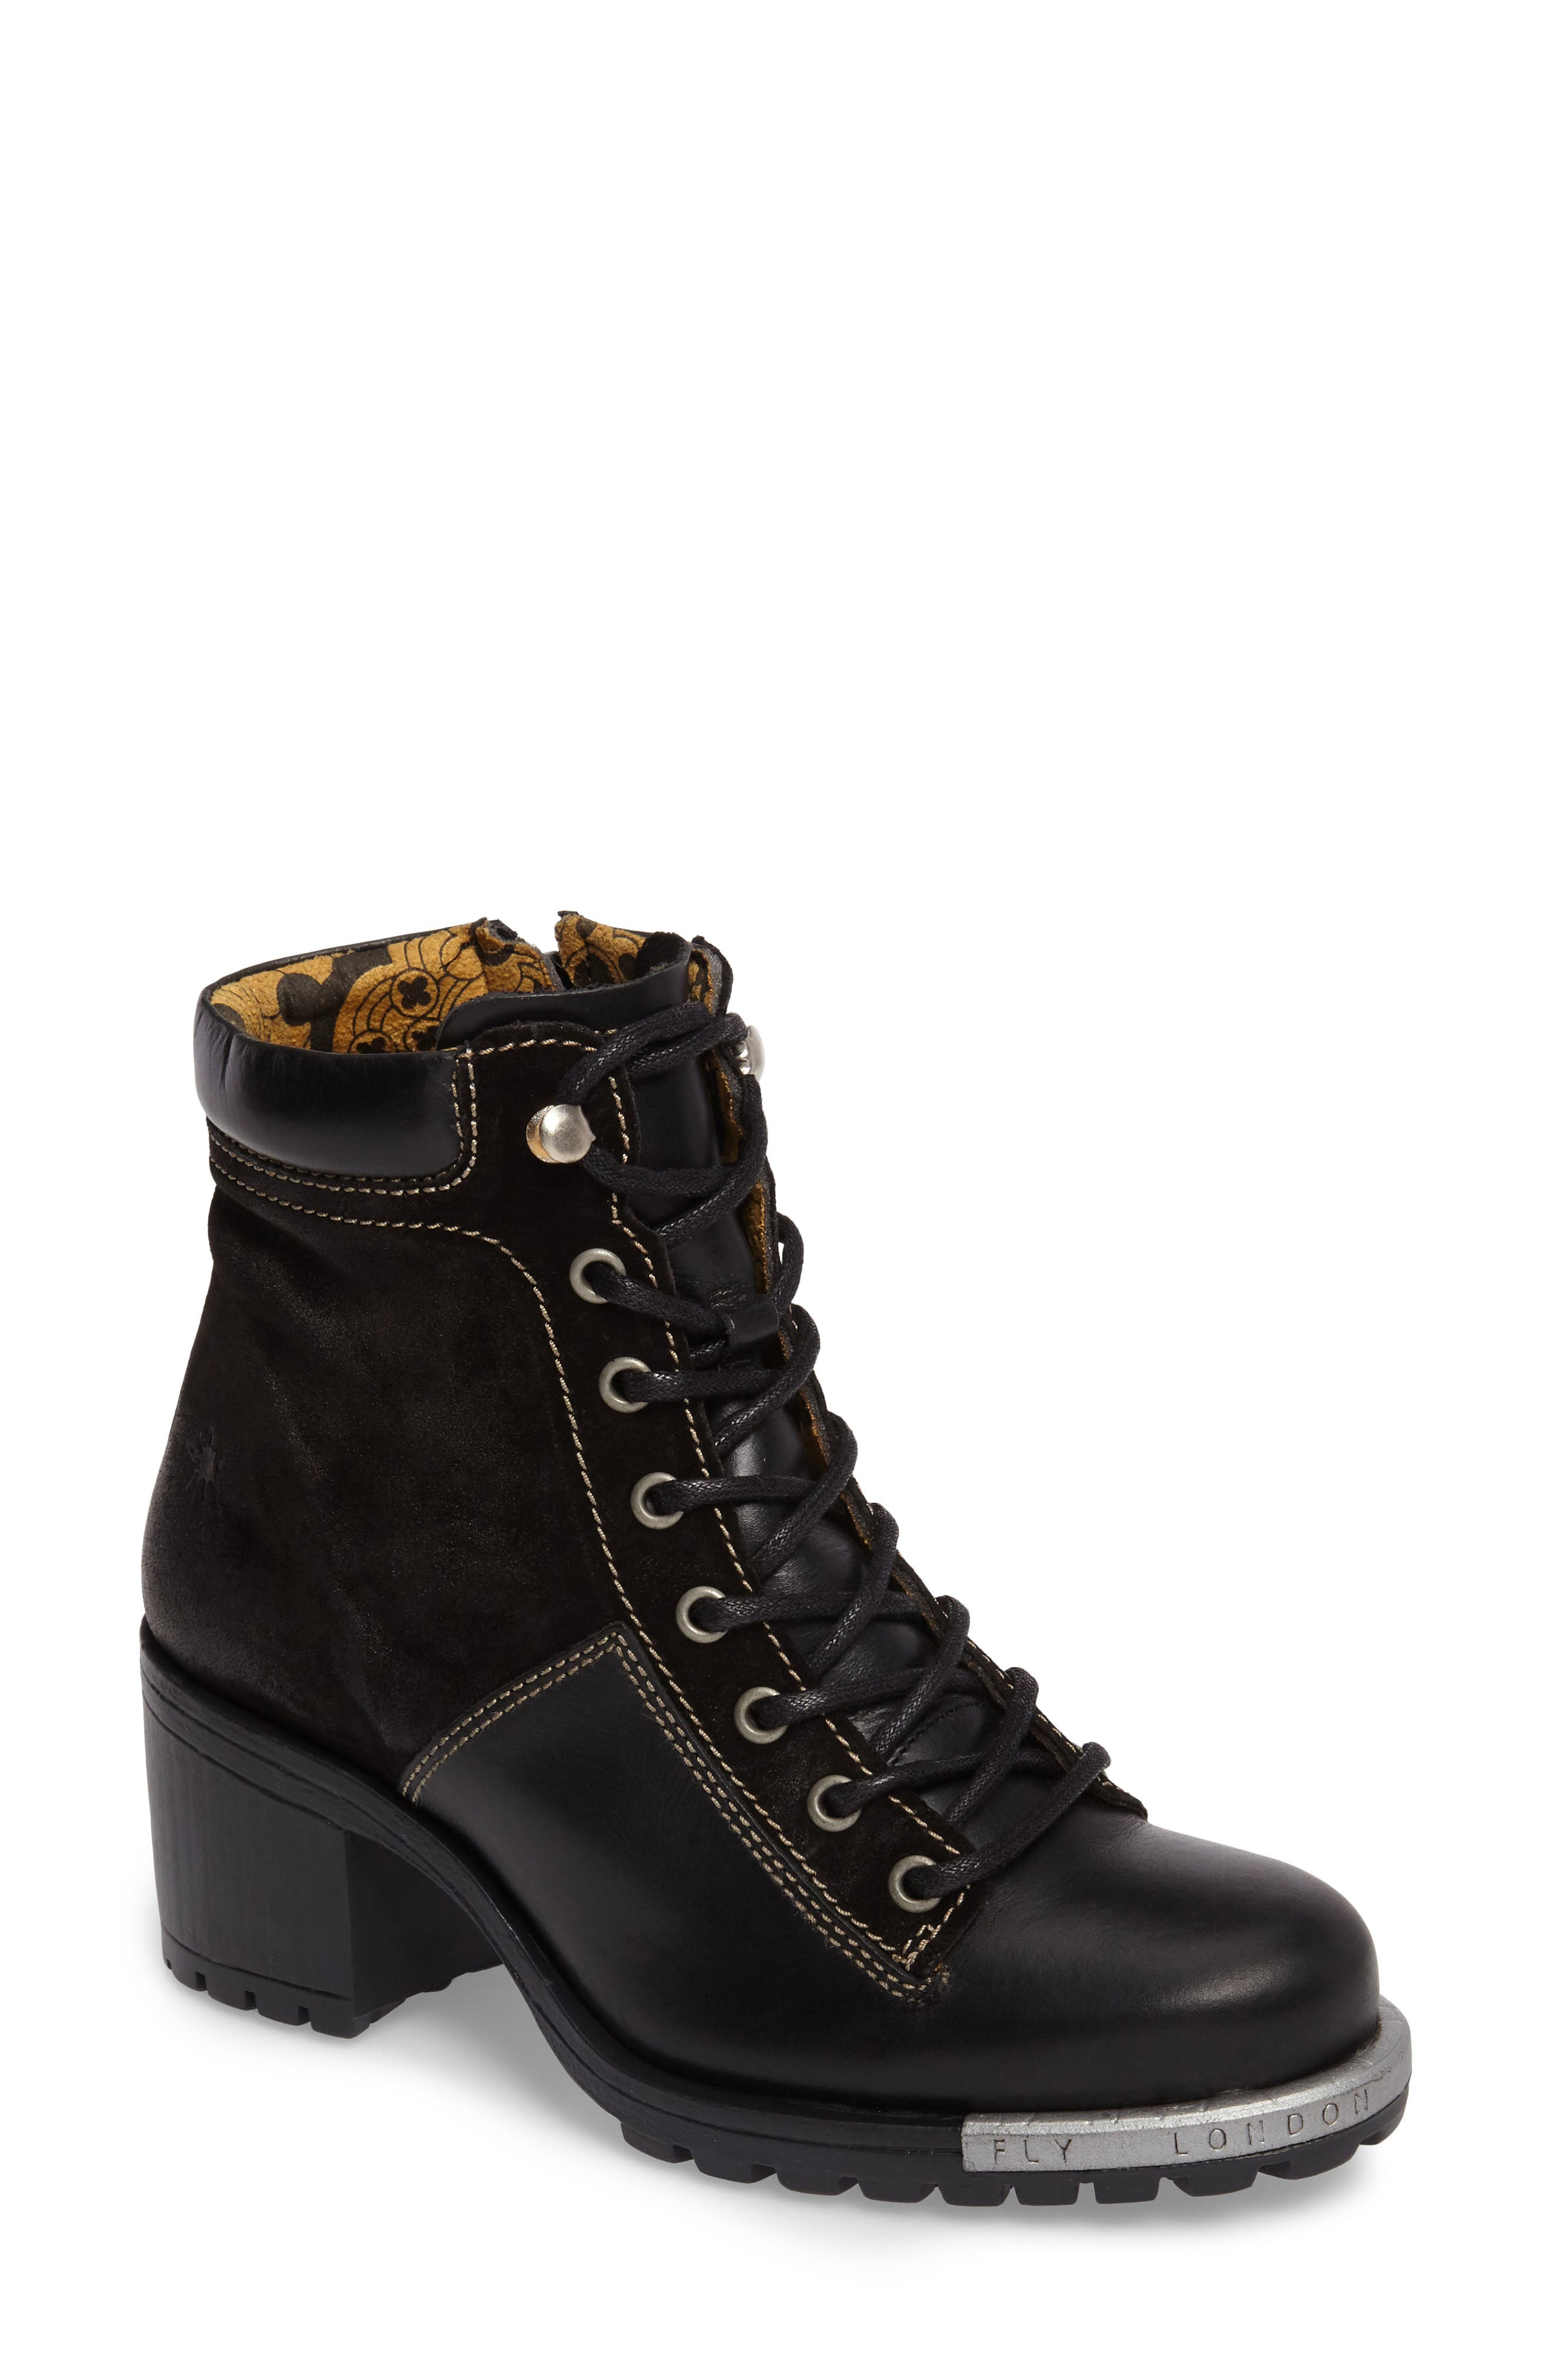 FLY LONDON,                             'Leal' Boot,                             Main thumbnail 1, color,                             005